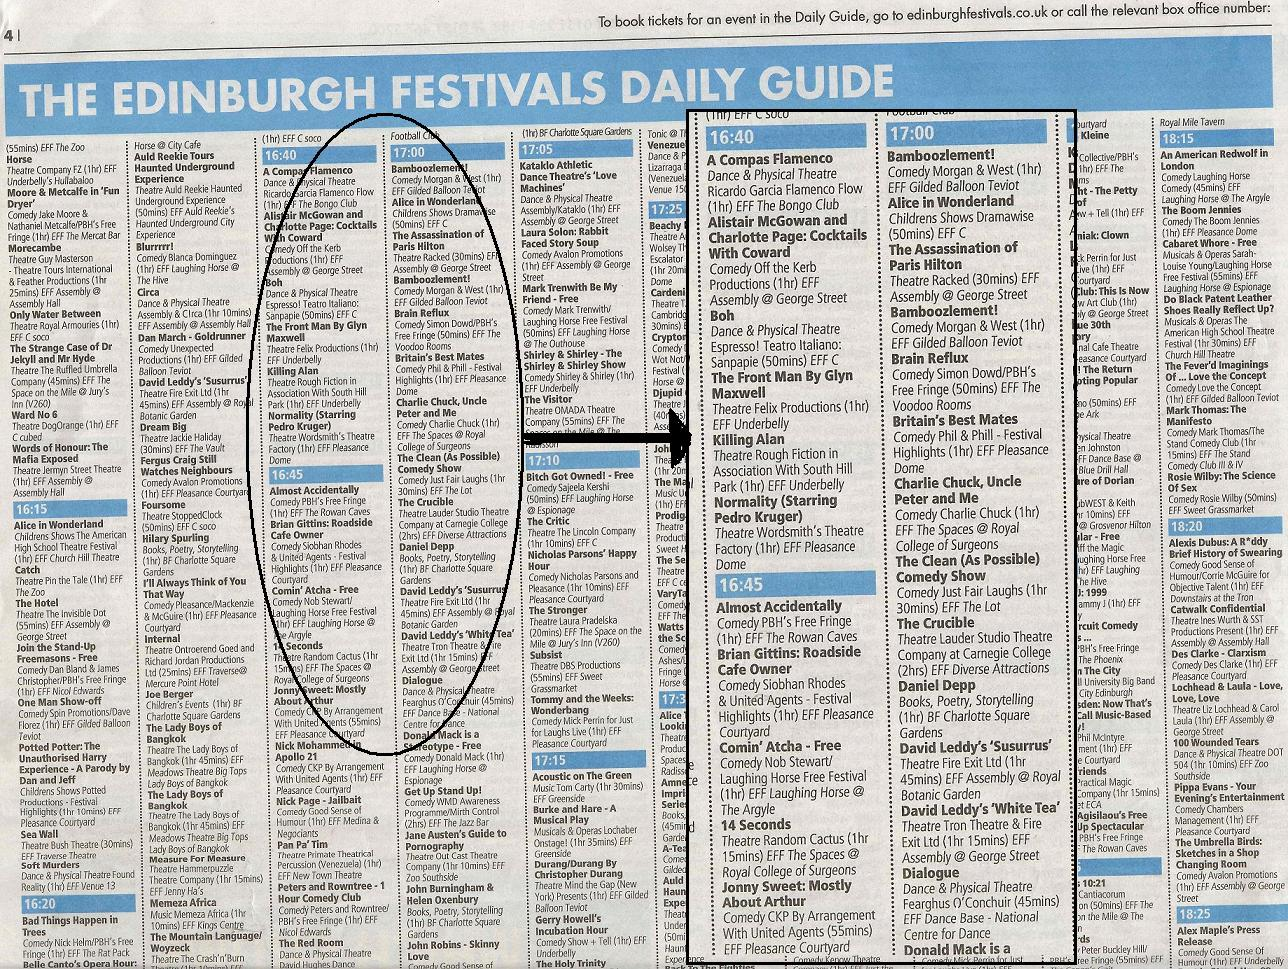 Ed_Fest09_Daily_Guide_listings_15-08-09_with_detail